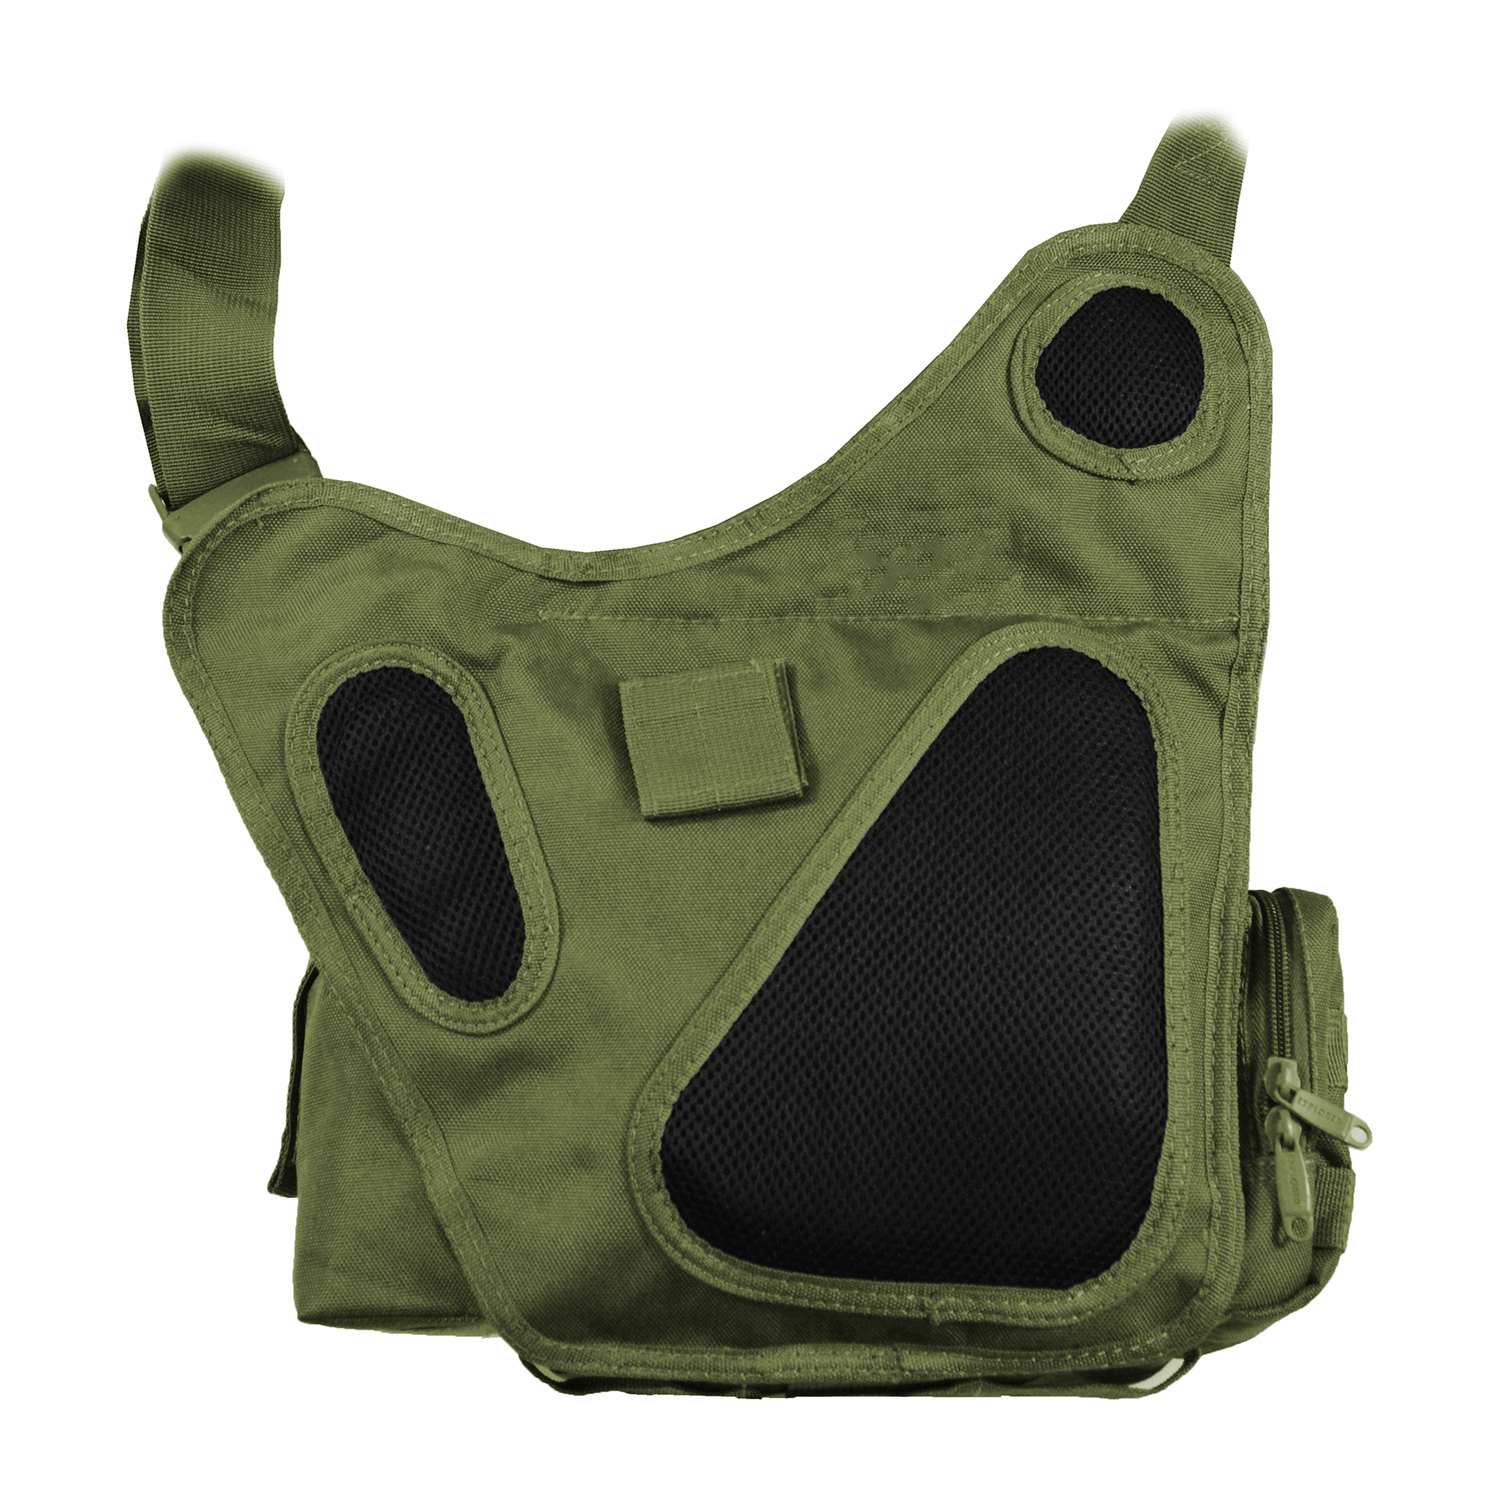 Every day carry tactical messenger molle side sling shoulder bag w every day carry tactical messenger molle side sling fandeluxe Image collections